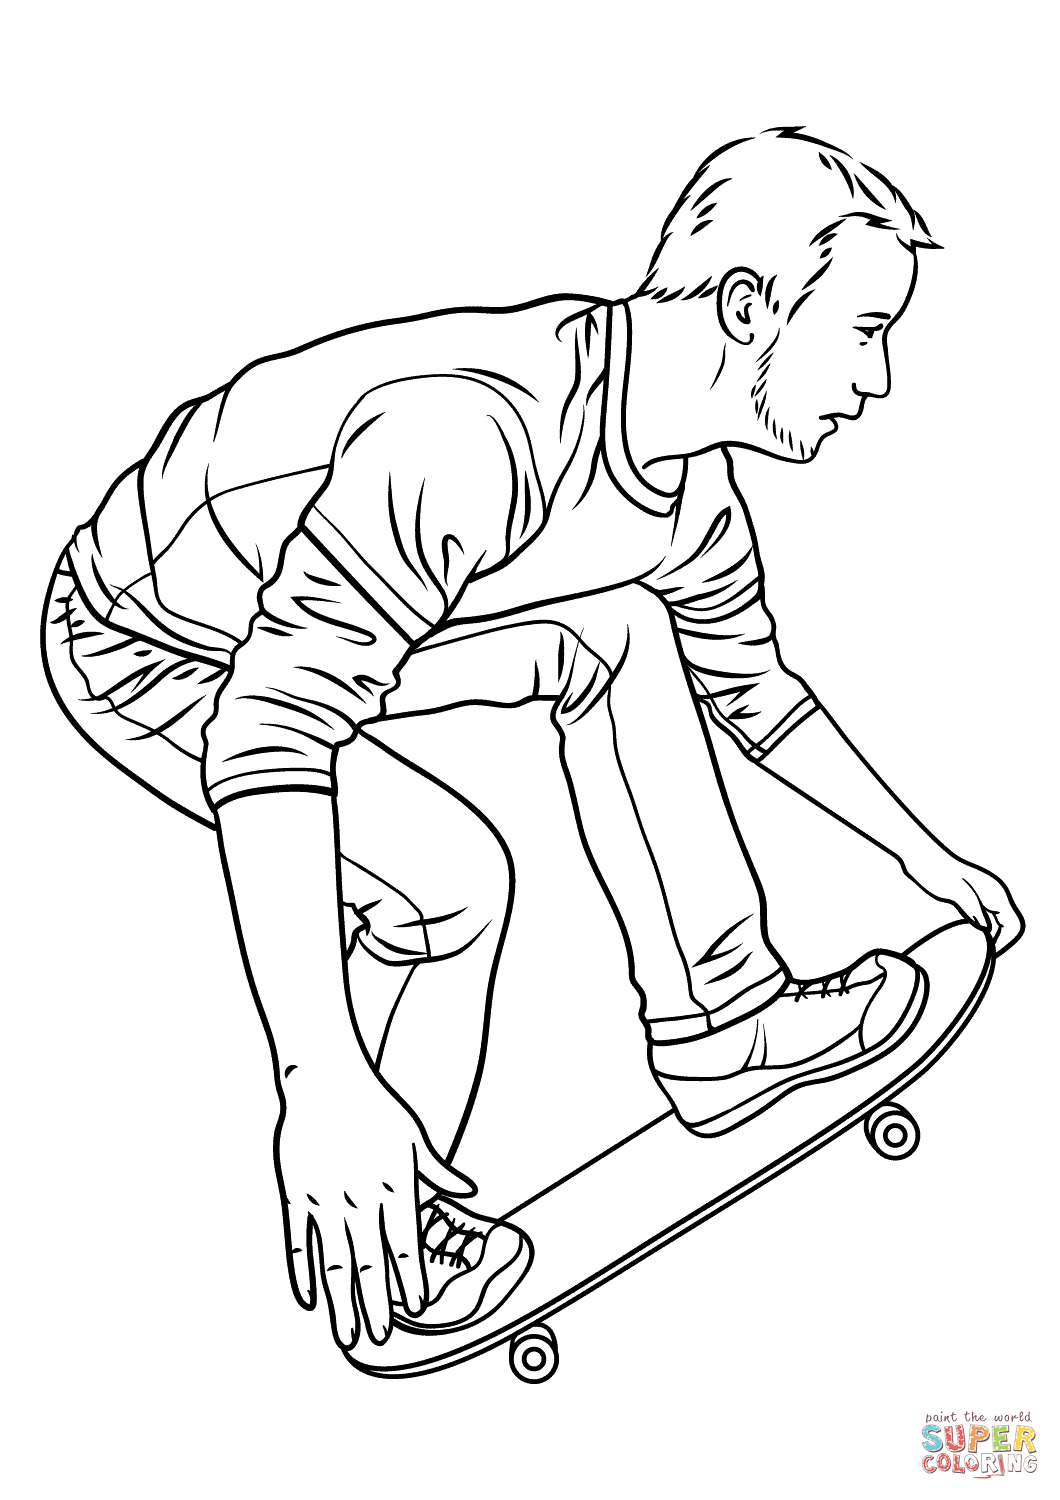 Penny Board Drawing At Getdrawings